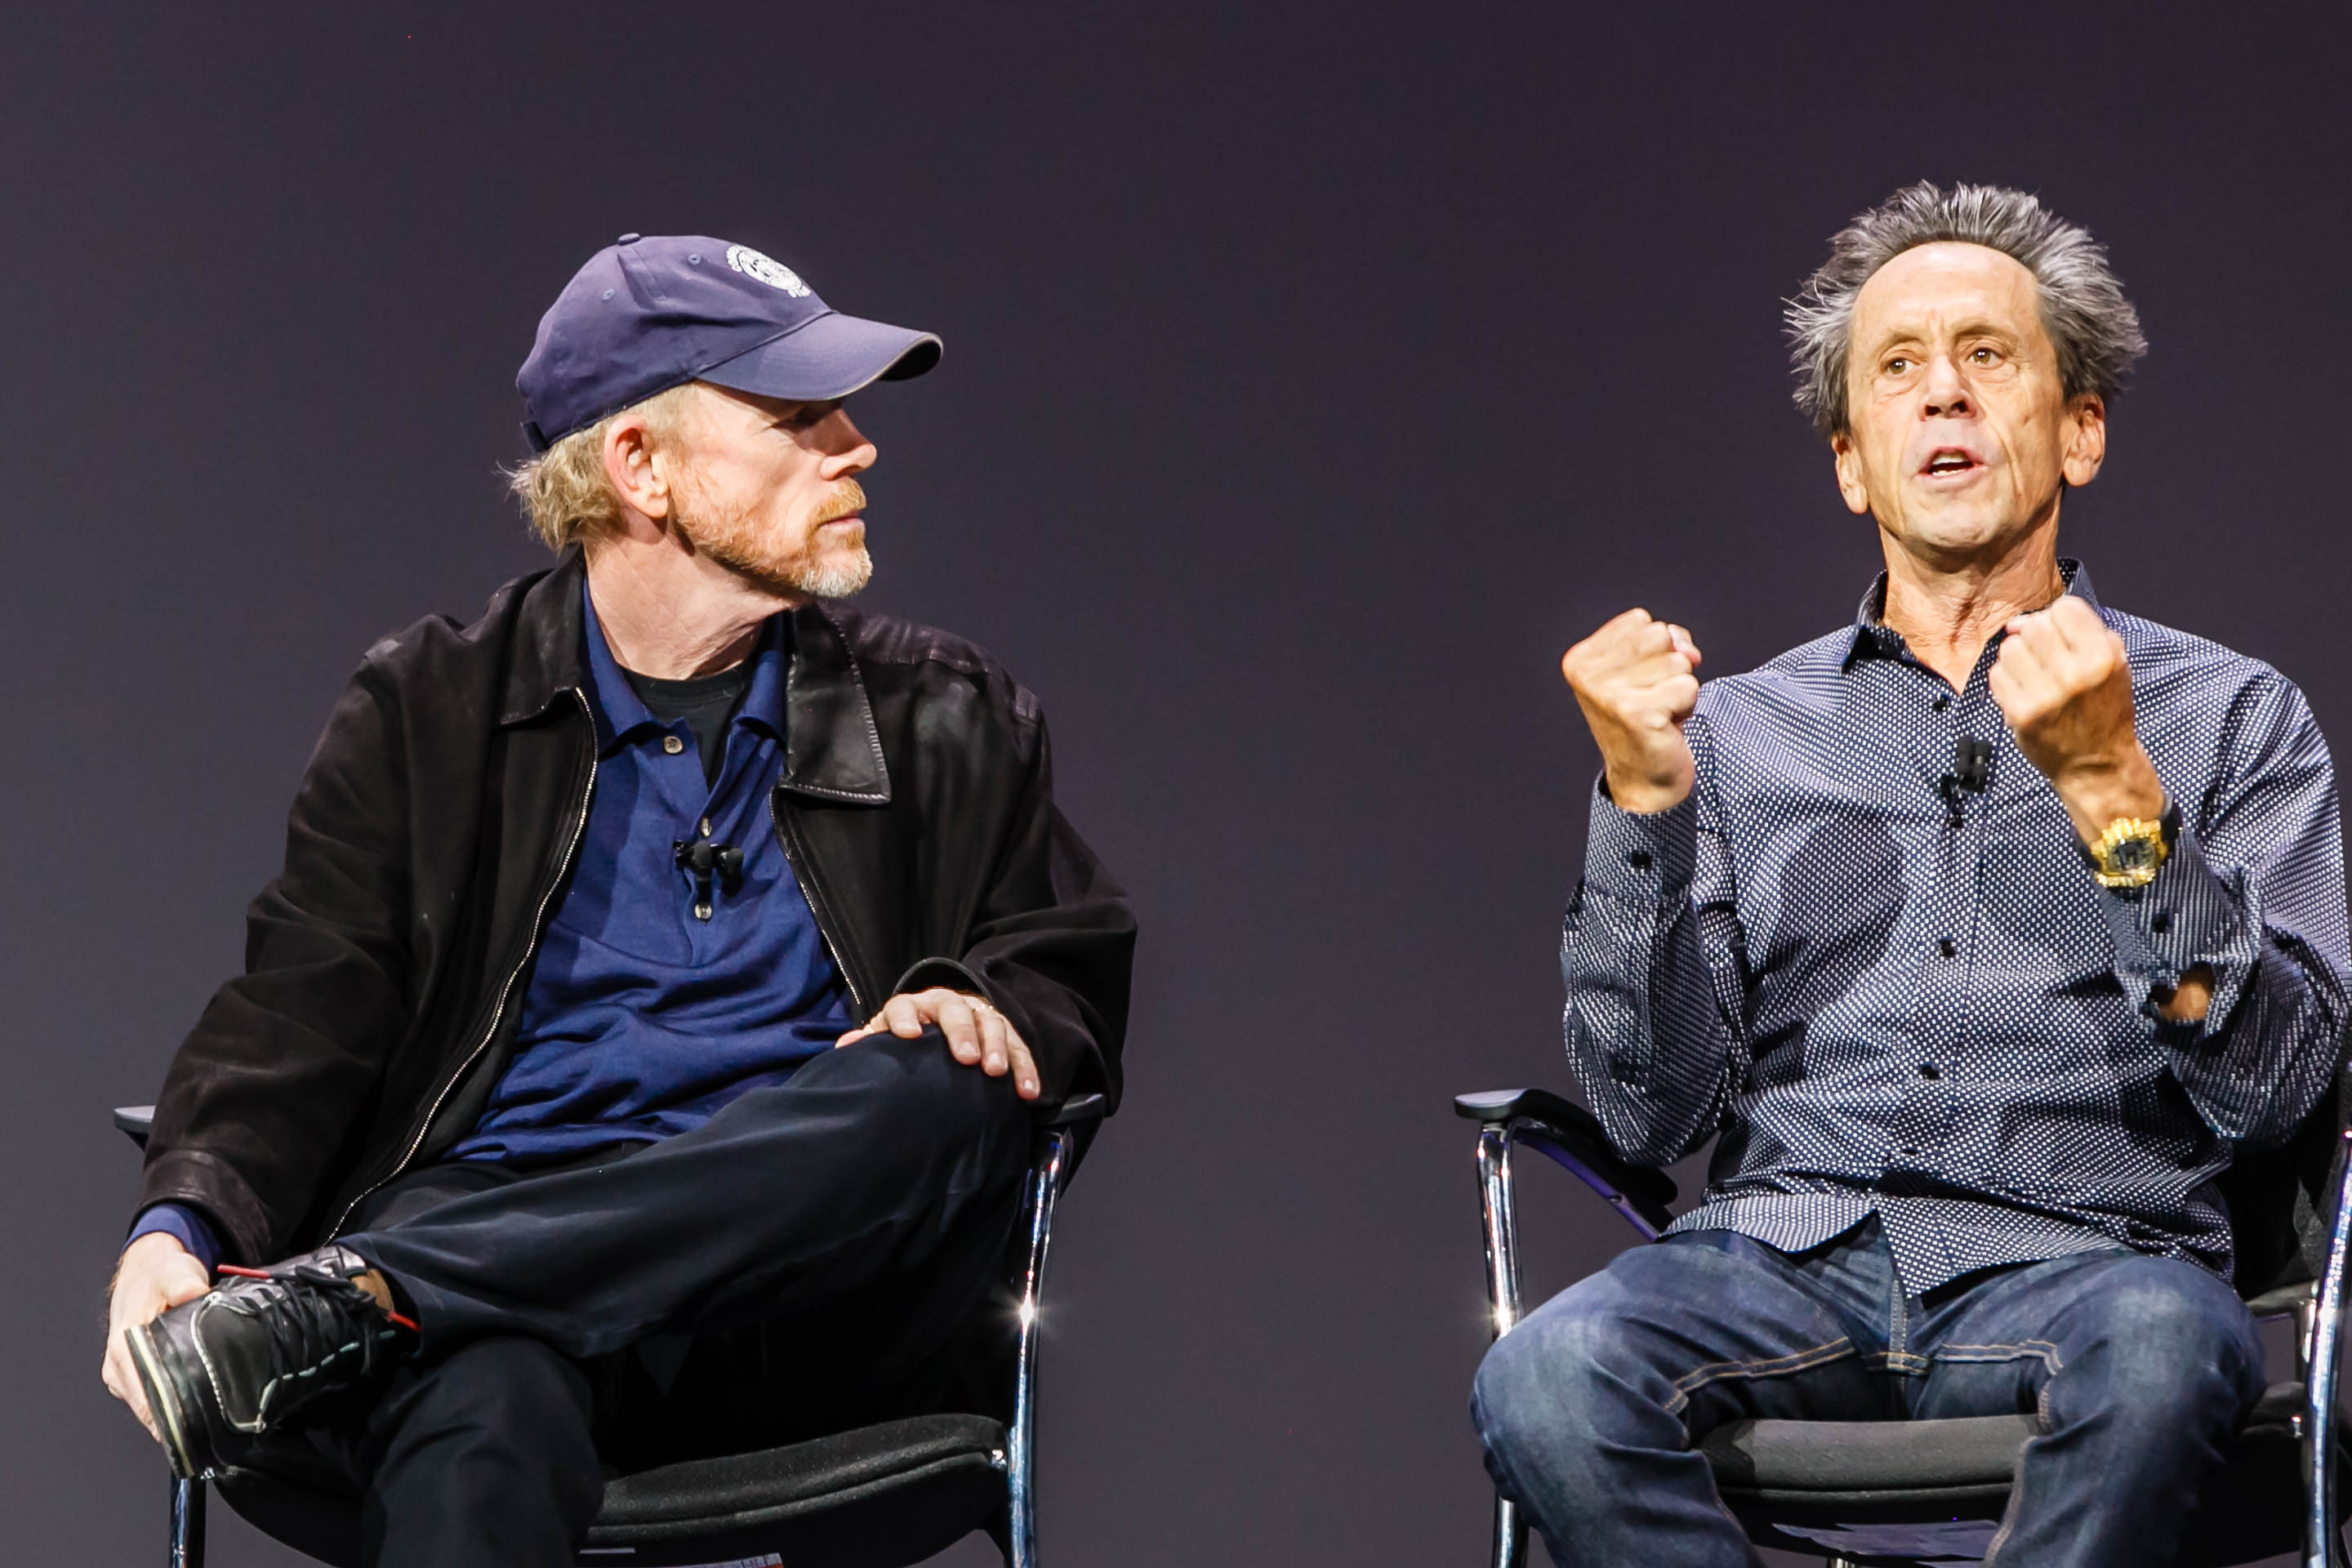 20151028093558 6228 IBM INSIGHT 2015 WED GENERAL SESSION JASON SILVA BRIAN GRAZER RON HOWARD